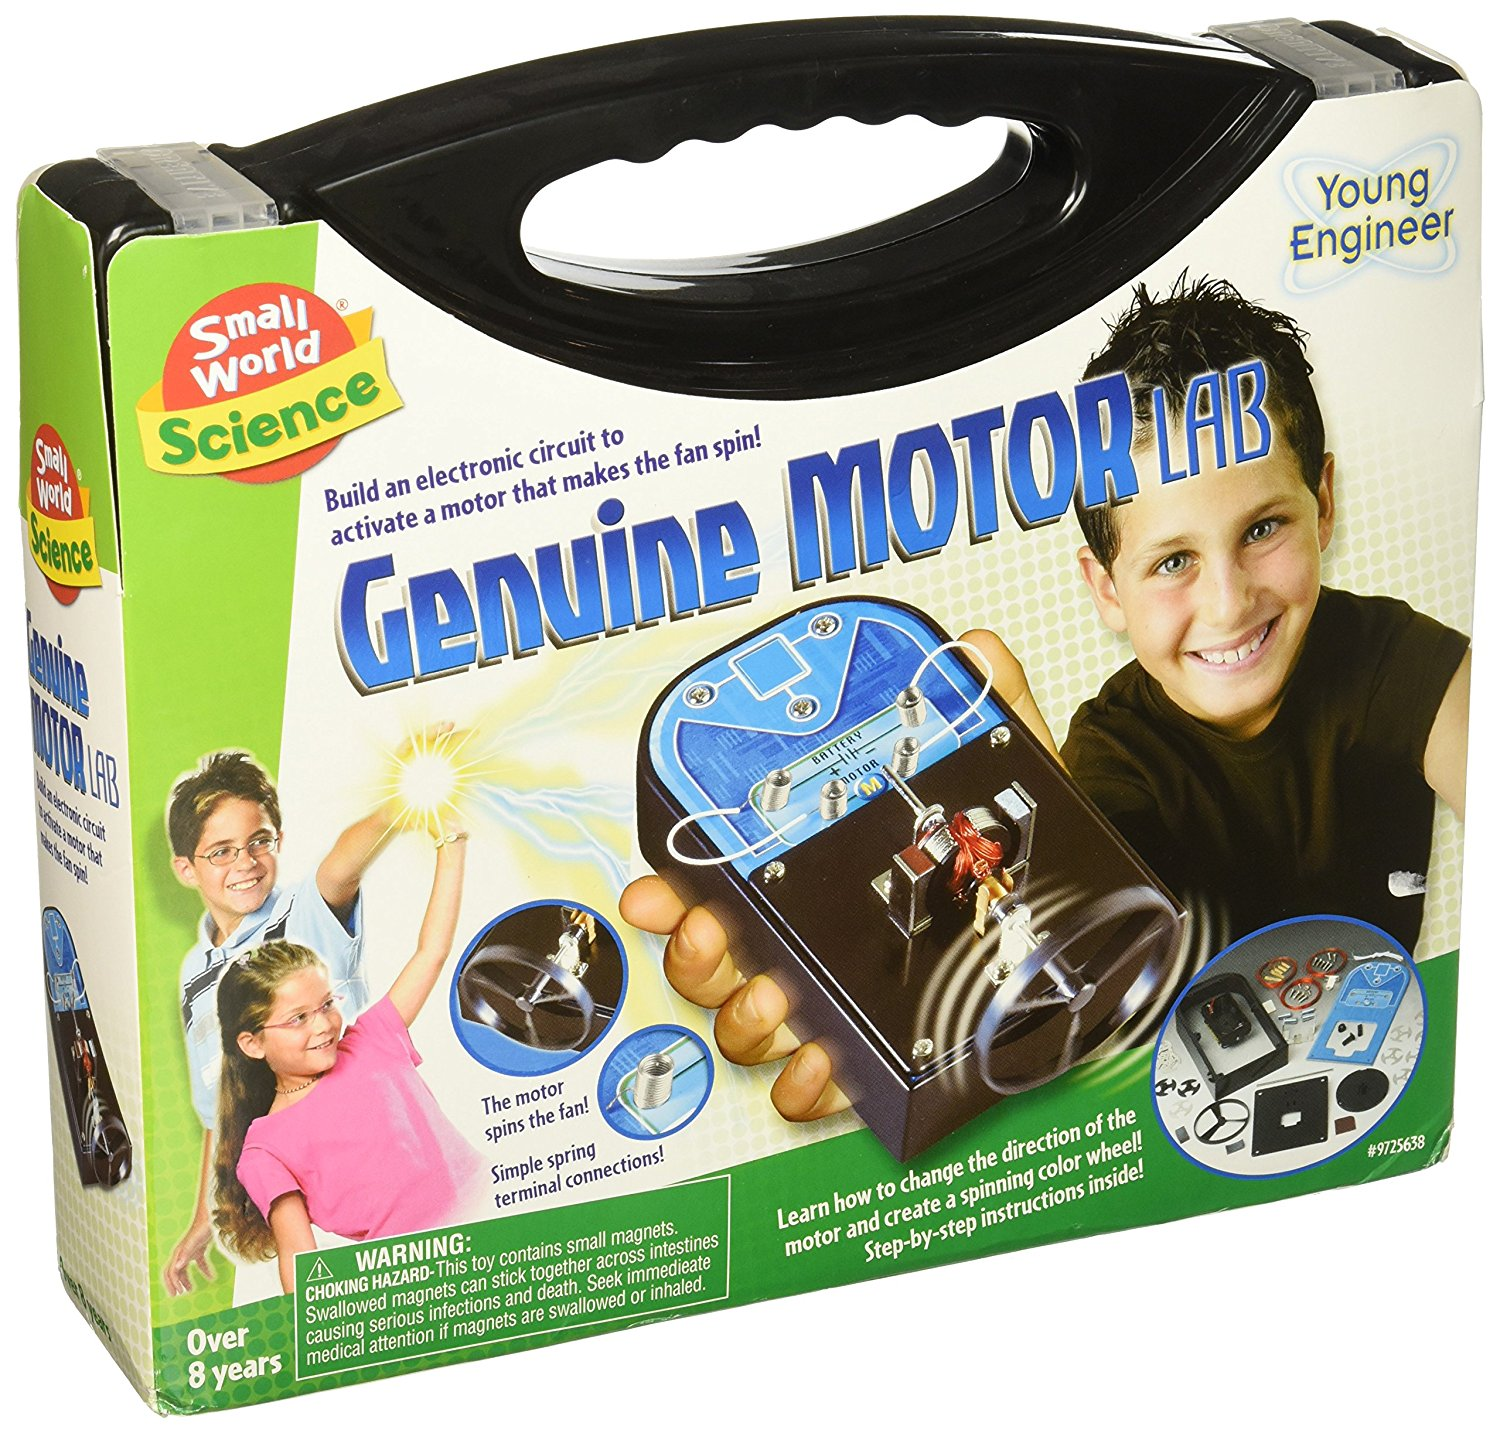 Genuine Motor Lab Science Kit..., By Small World Toys Ship from US by